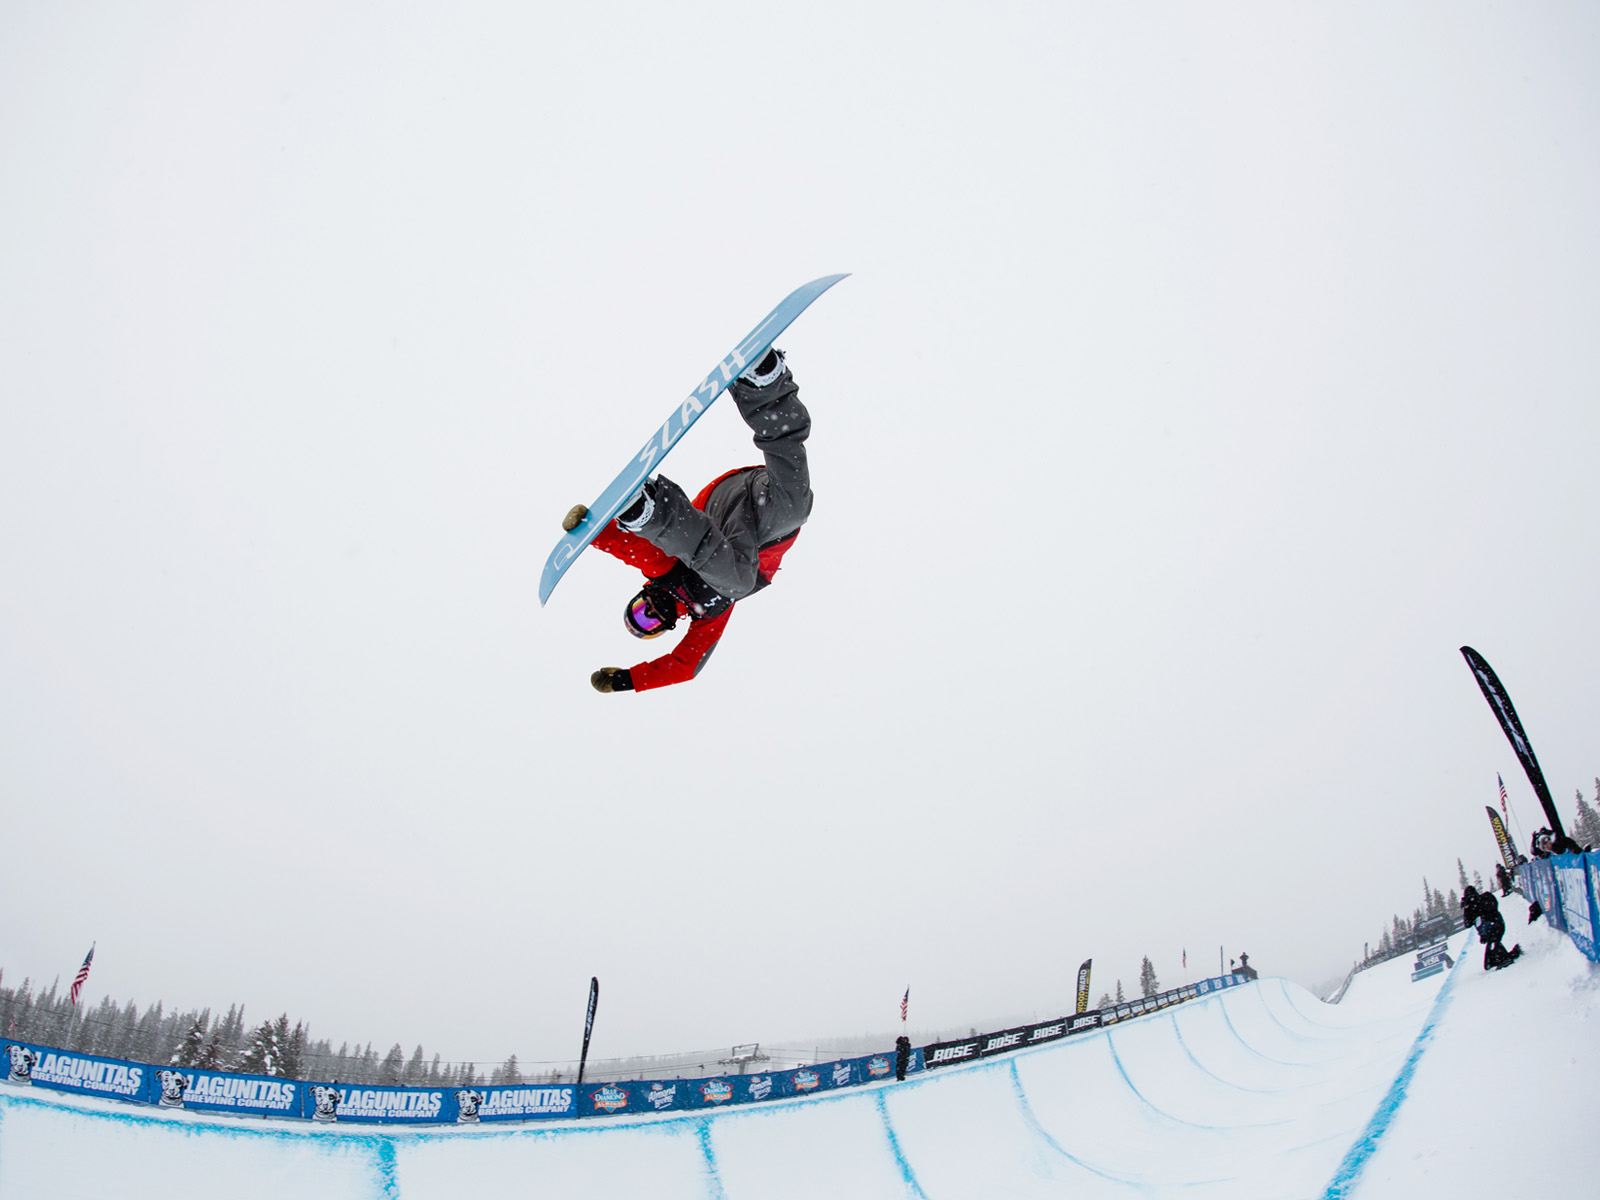 Snowboard Athlete Membership